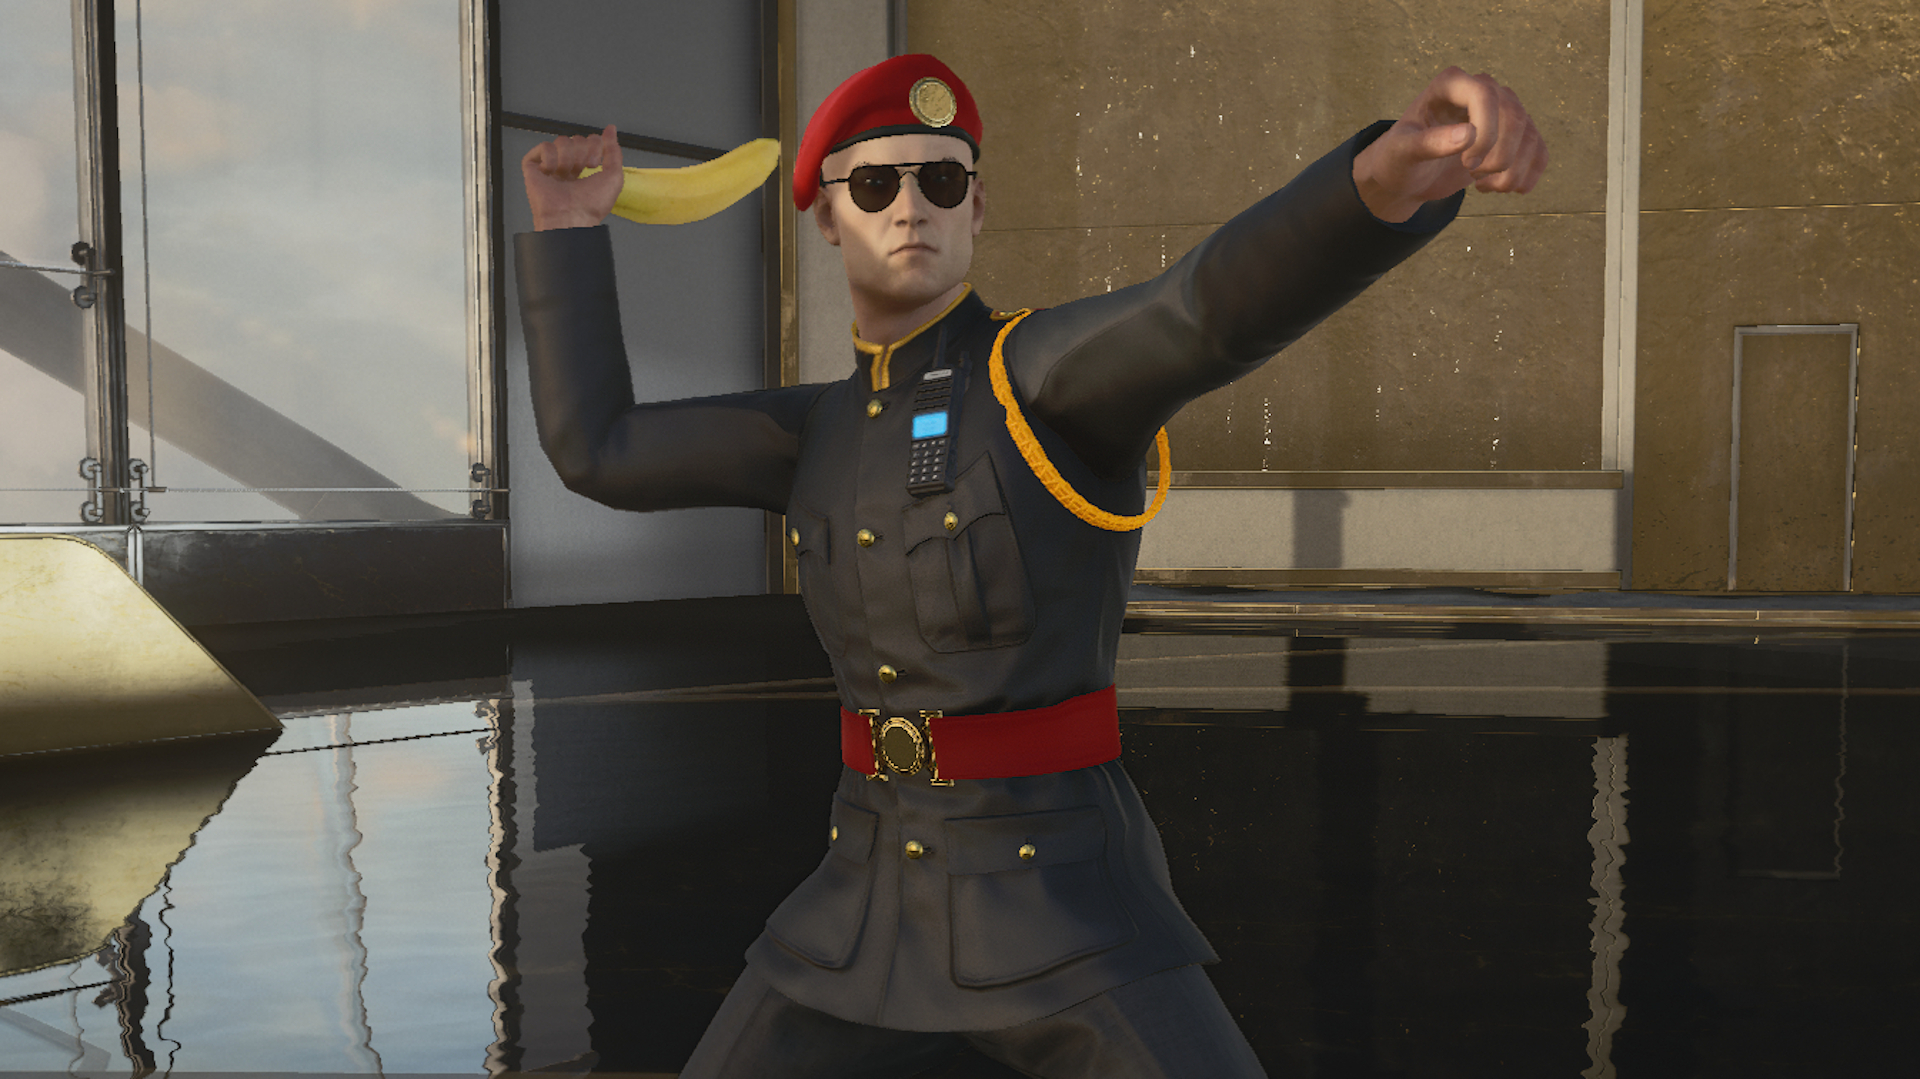 Hitman 3's banana is one of the best weapons in the game